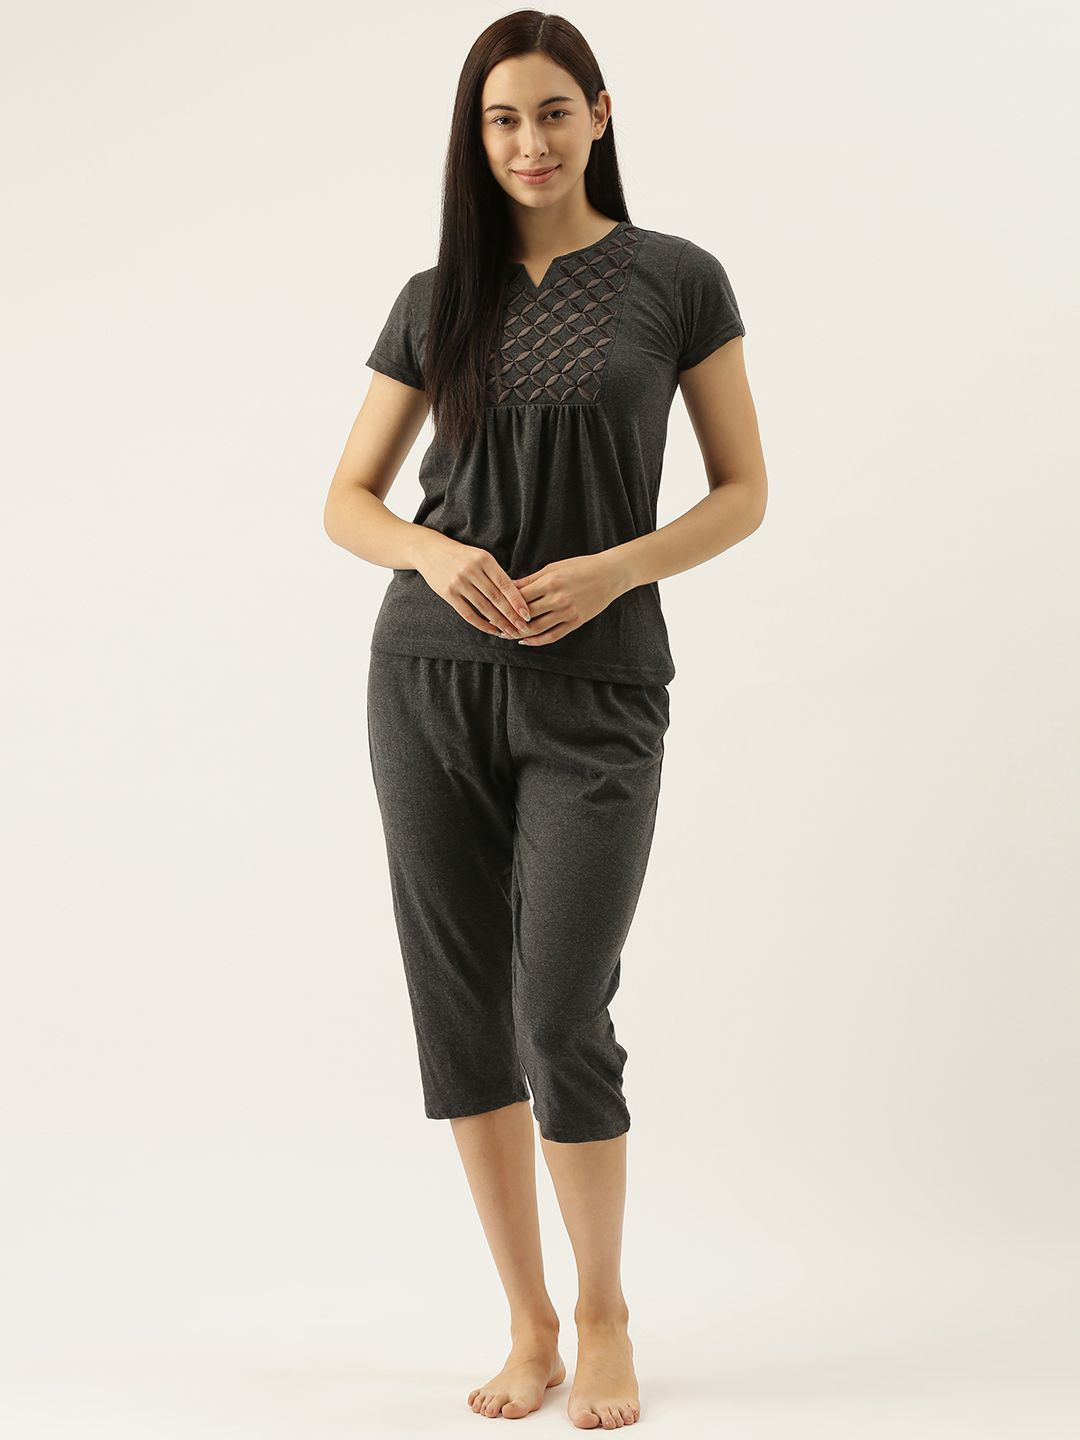 Charcoal Capri Set with Geometric Embroidery